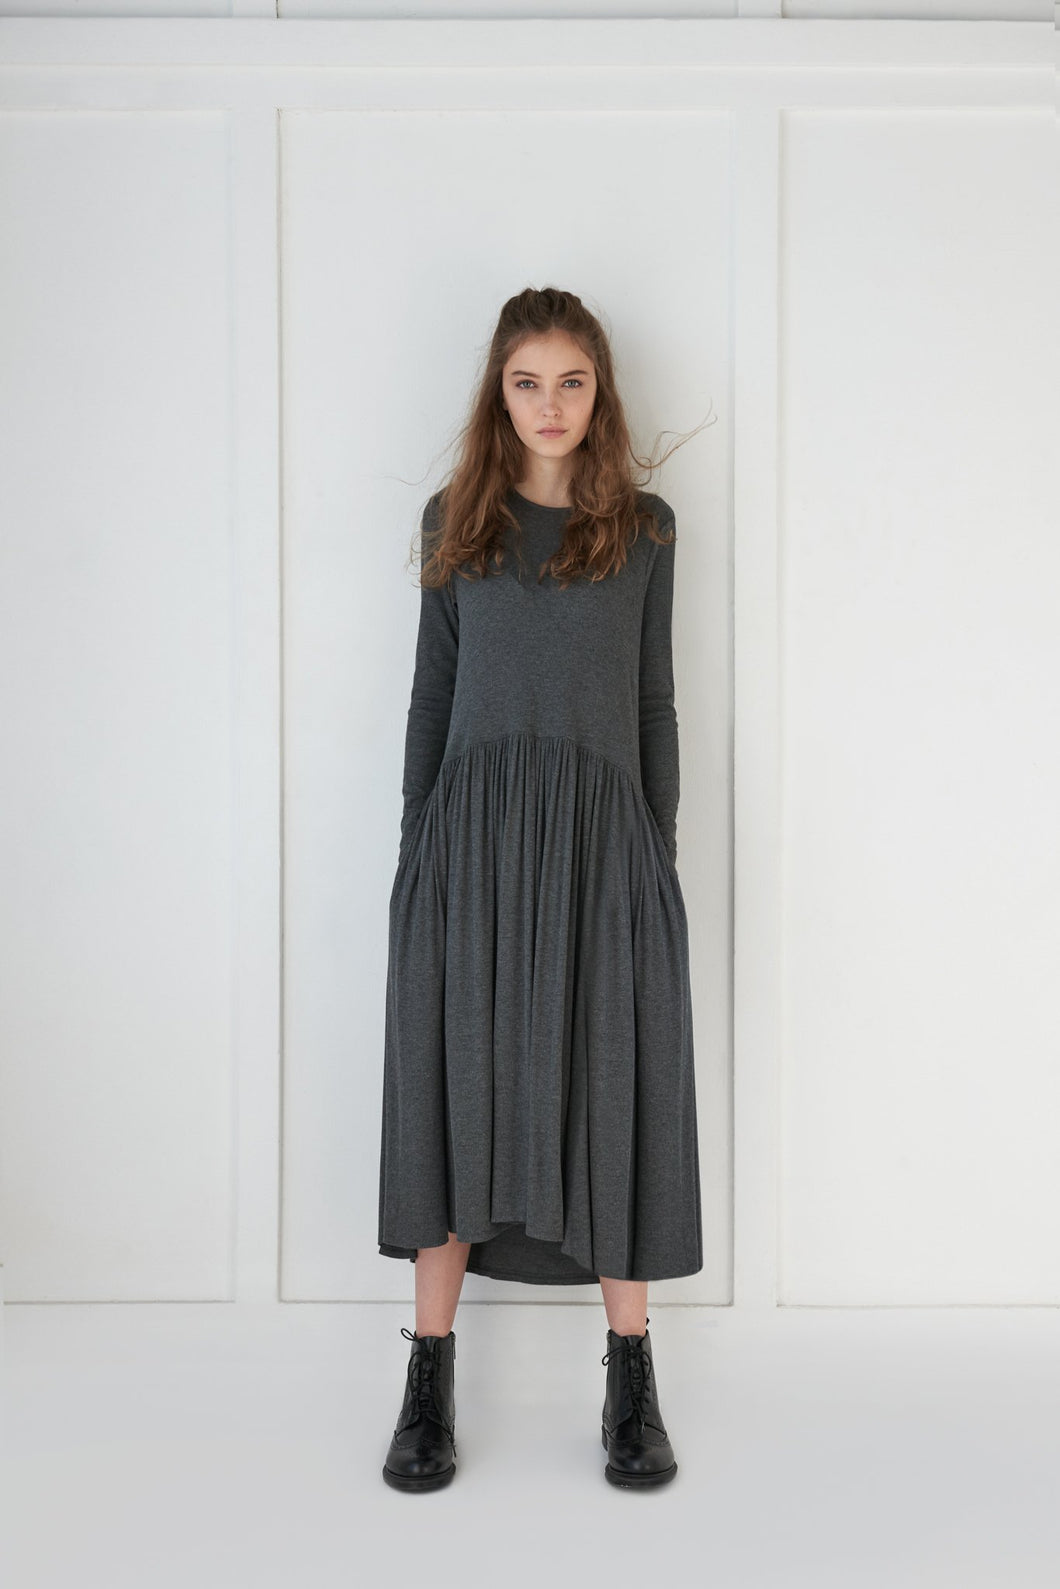 Grey Ribbed Dress - Unaya women's modest tops skirts dresses jewish girls conservative clothing fashion apparel